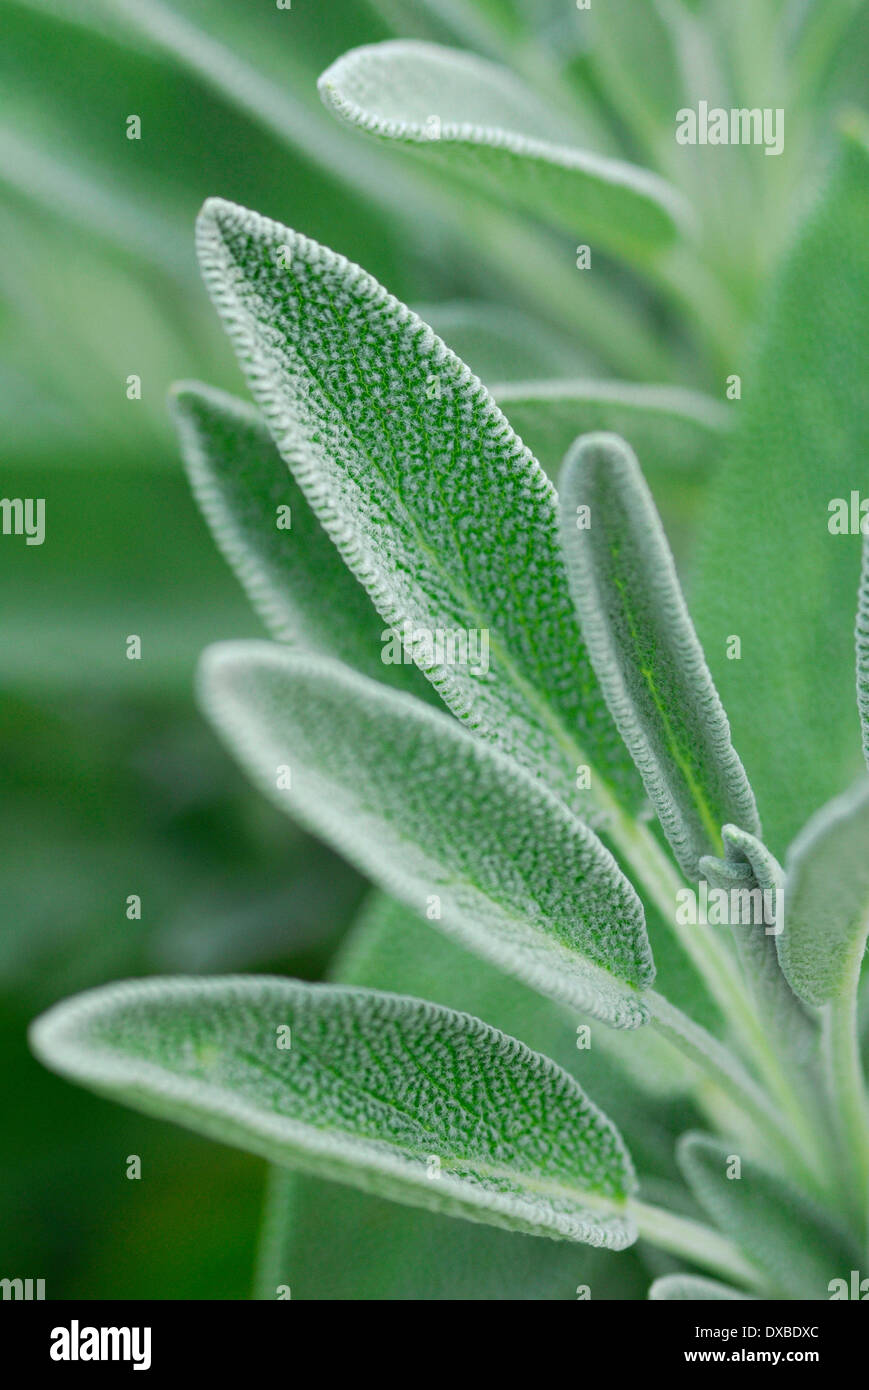 Salvia officinalis - Stock Image